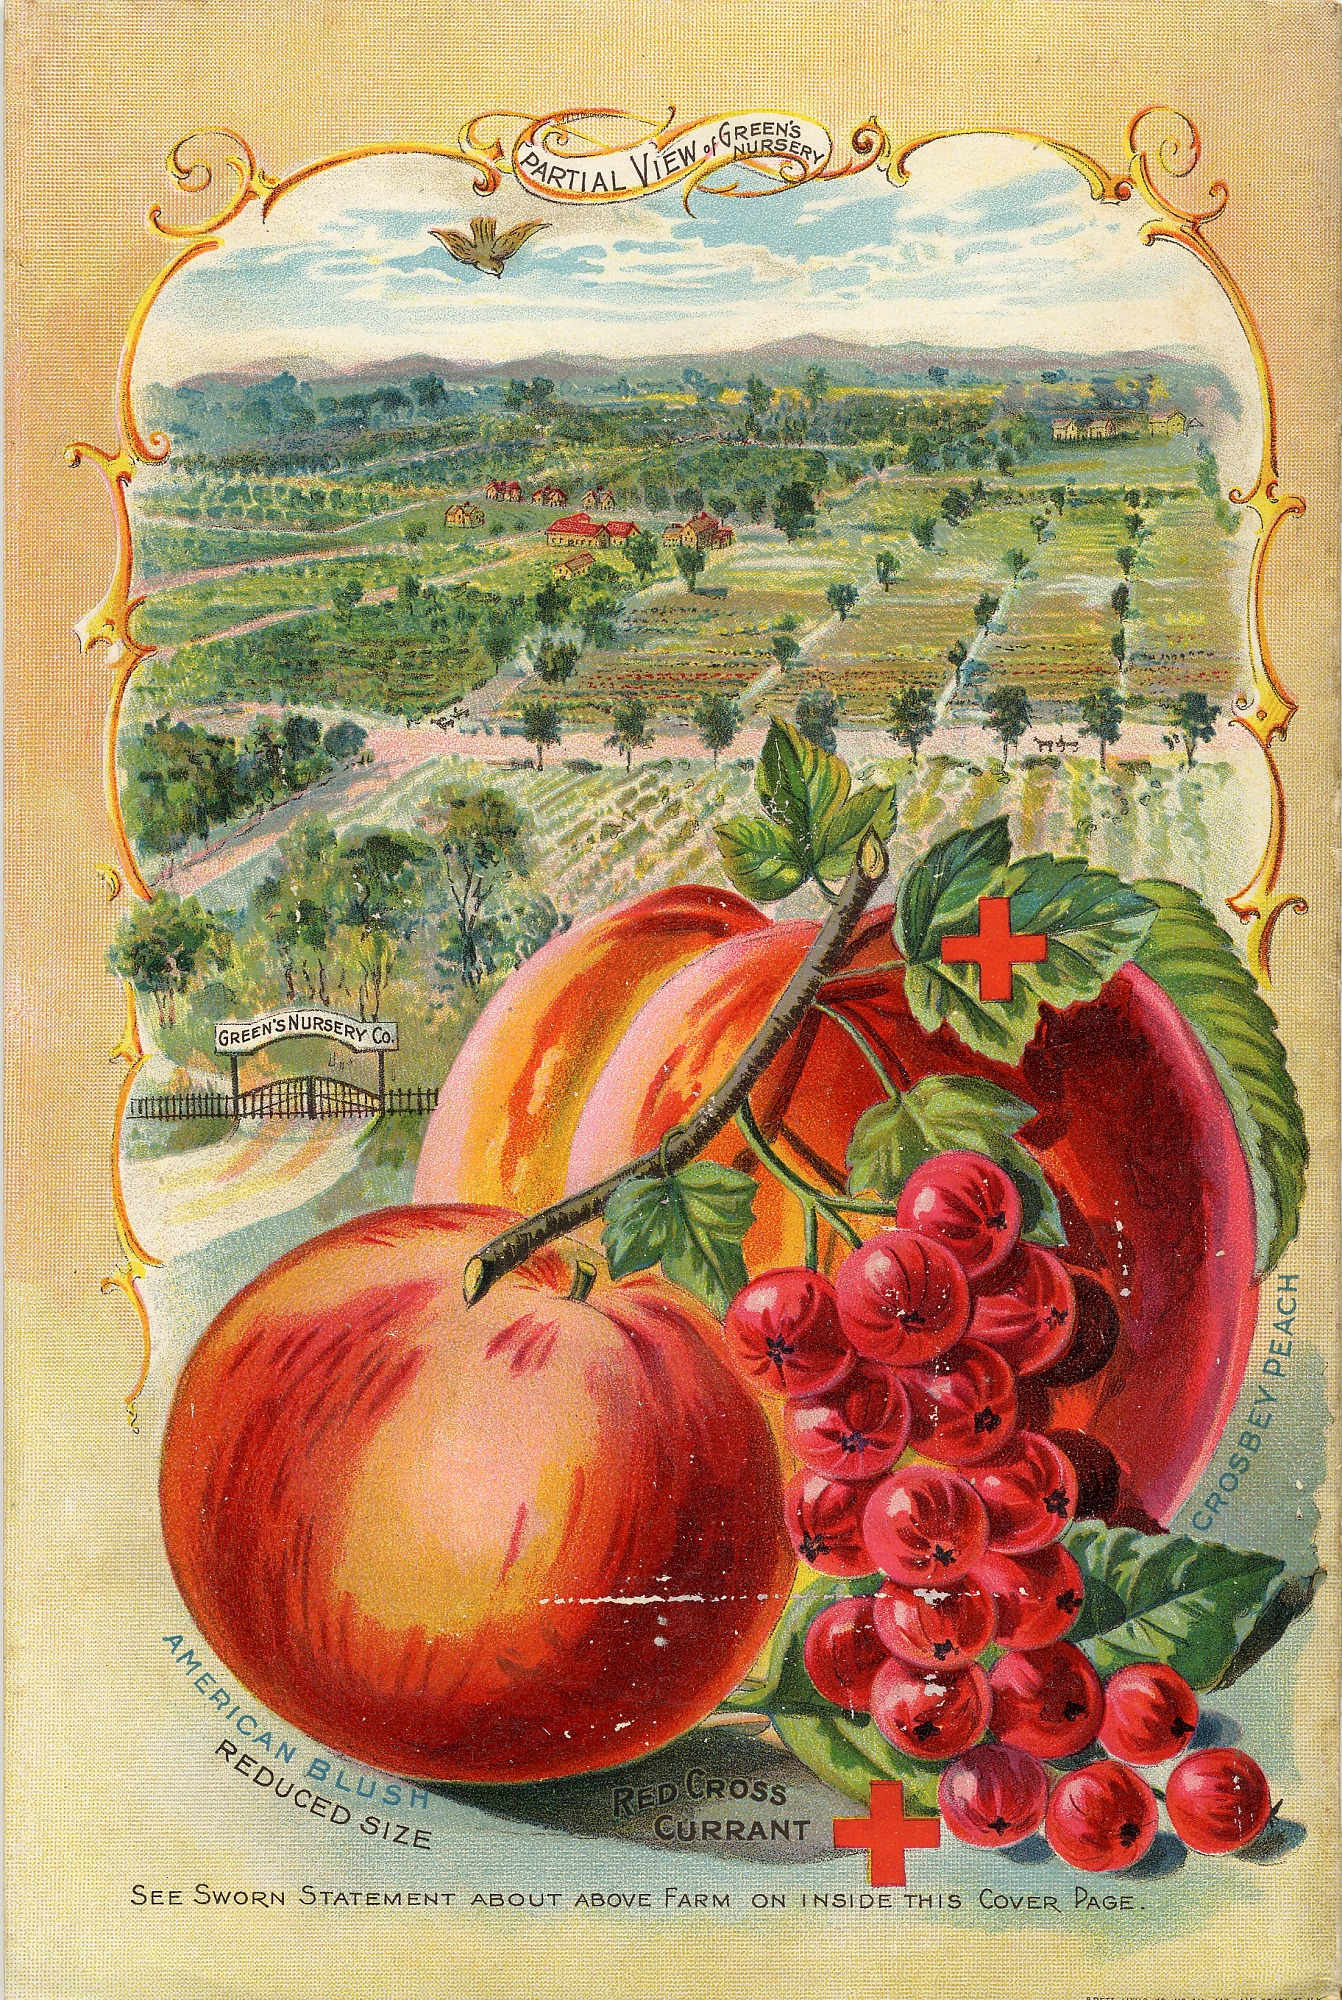 Peaches and currants from Green's nursery co  spring 1896